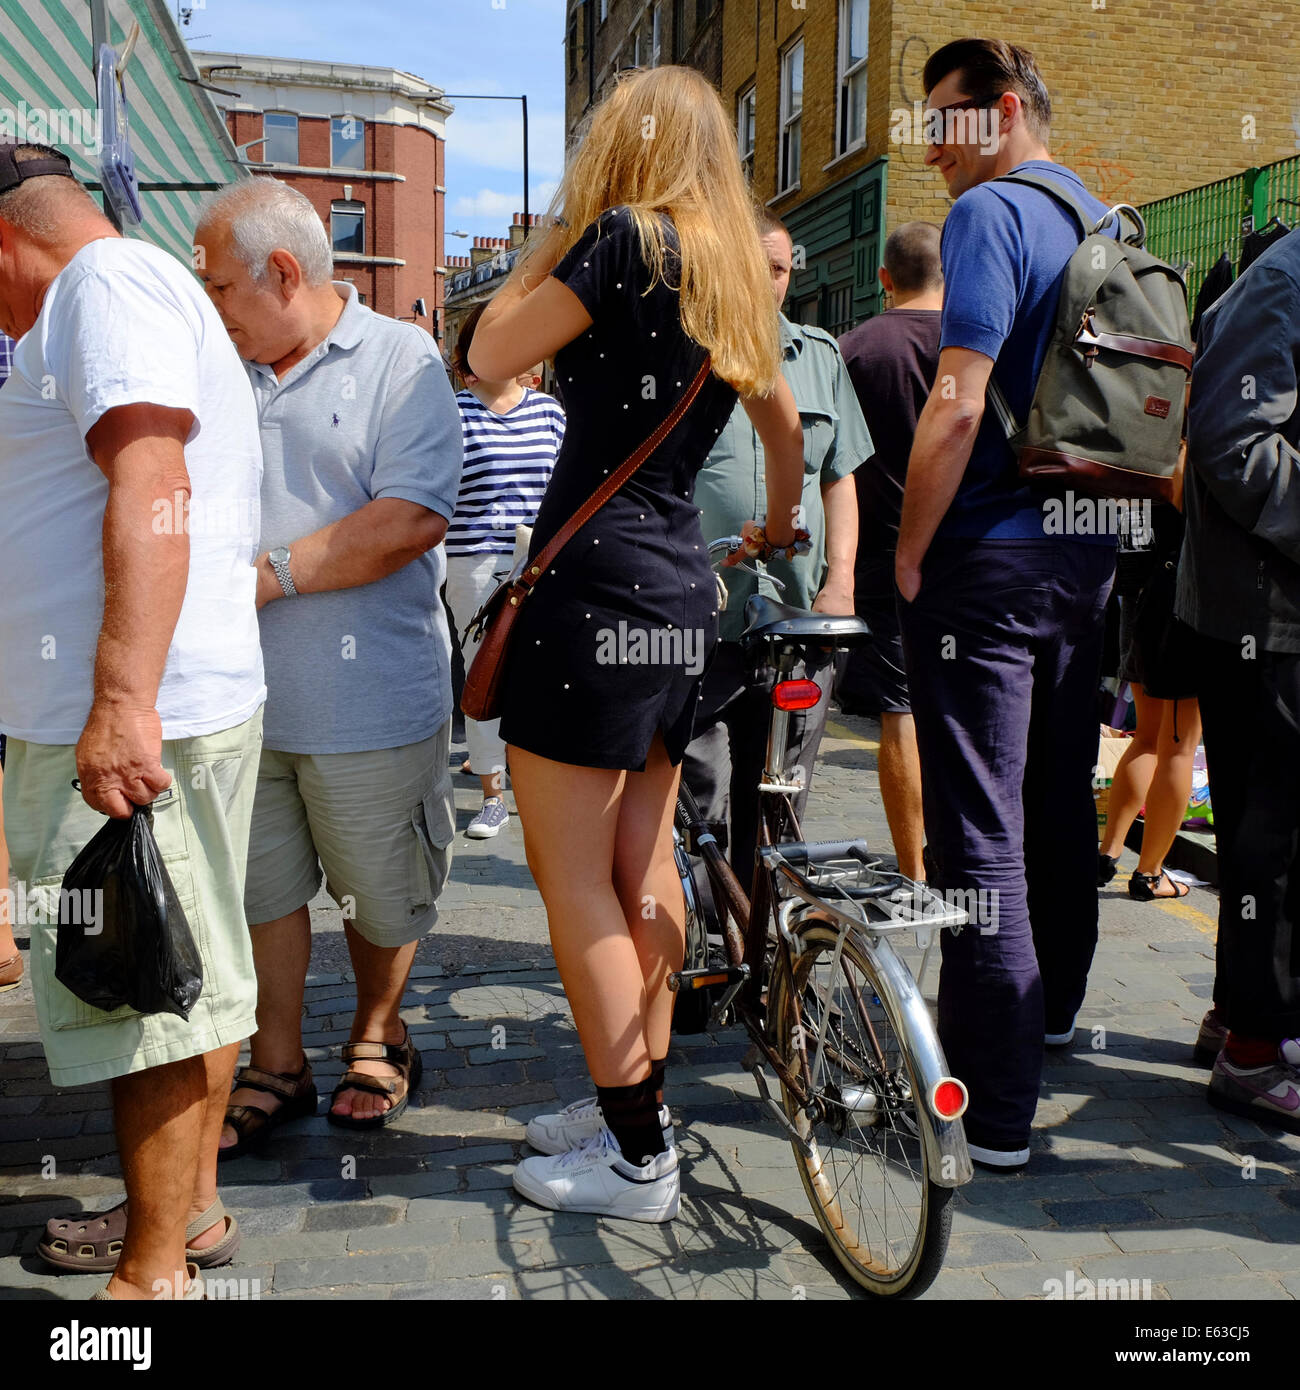 Attractive young woman in mini dress with bicycle taking on her phone in a crowded market in Shoreditch, London, - Stock Image